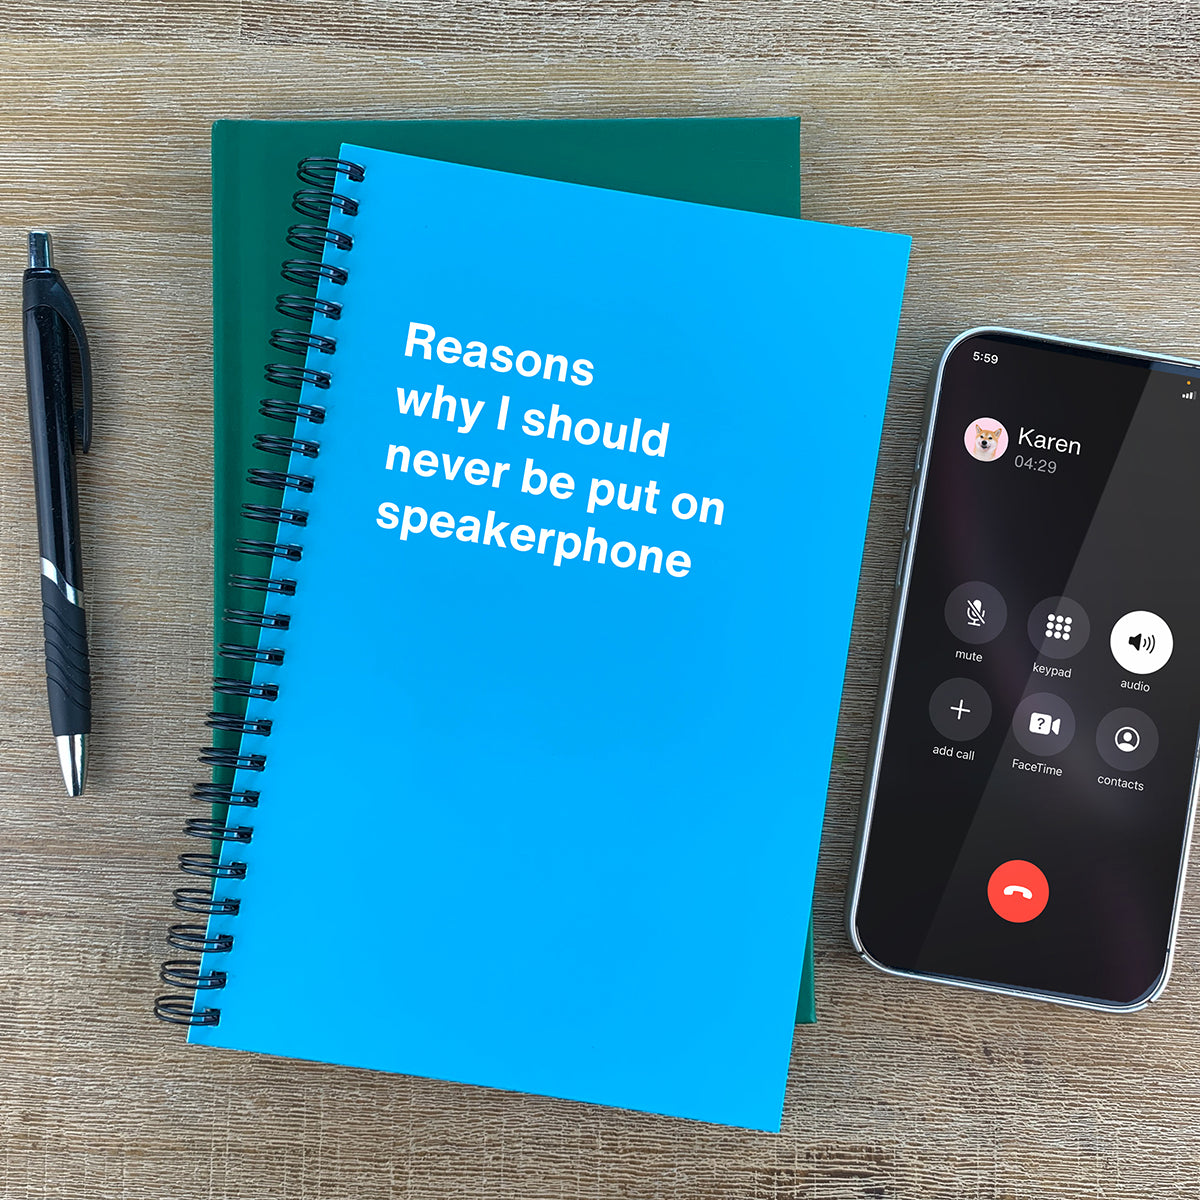 Reasons why I should never be put on speakerphone funny book